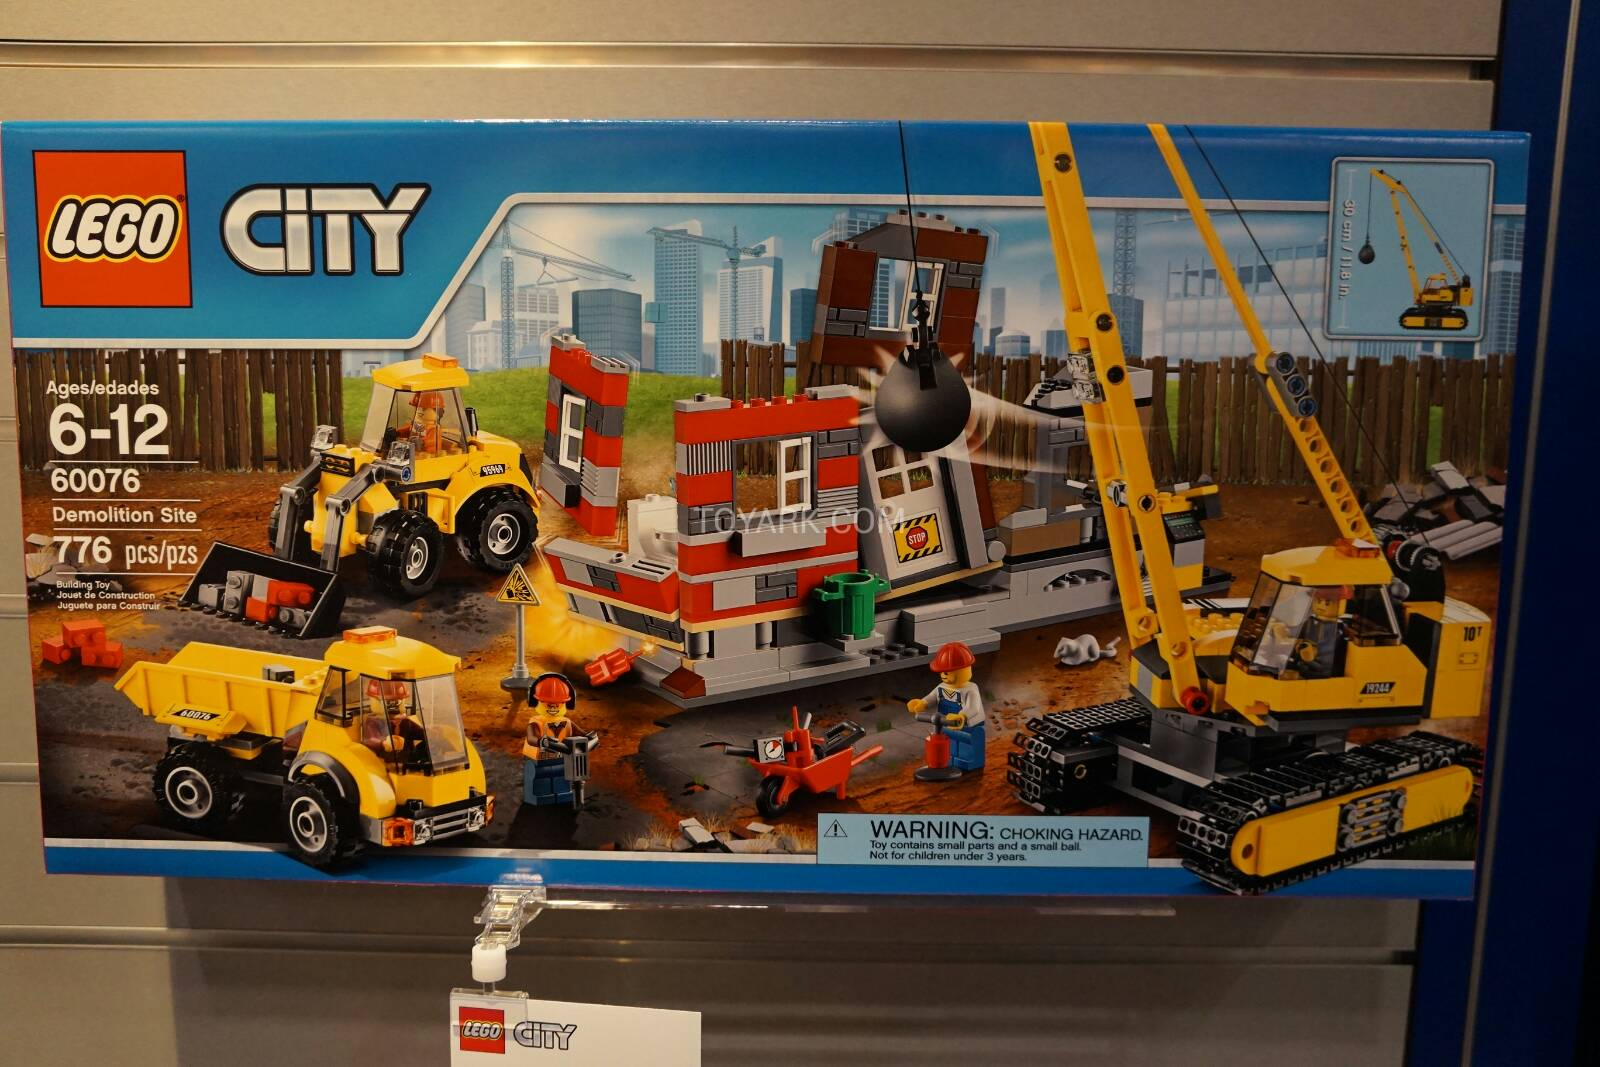 Lego City Toys : Lego city sets at toy fair the toyark news